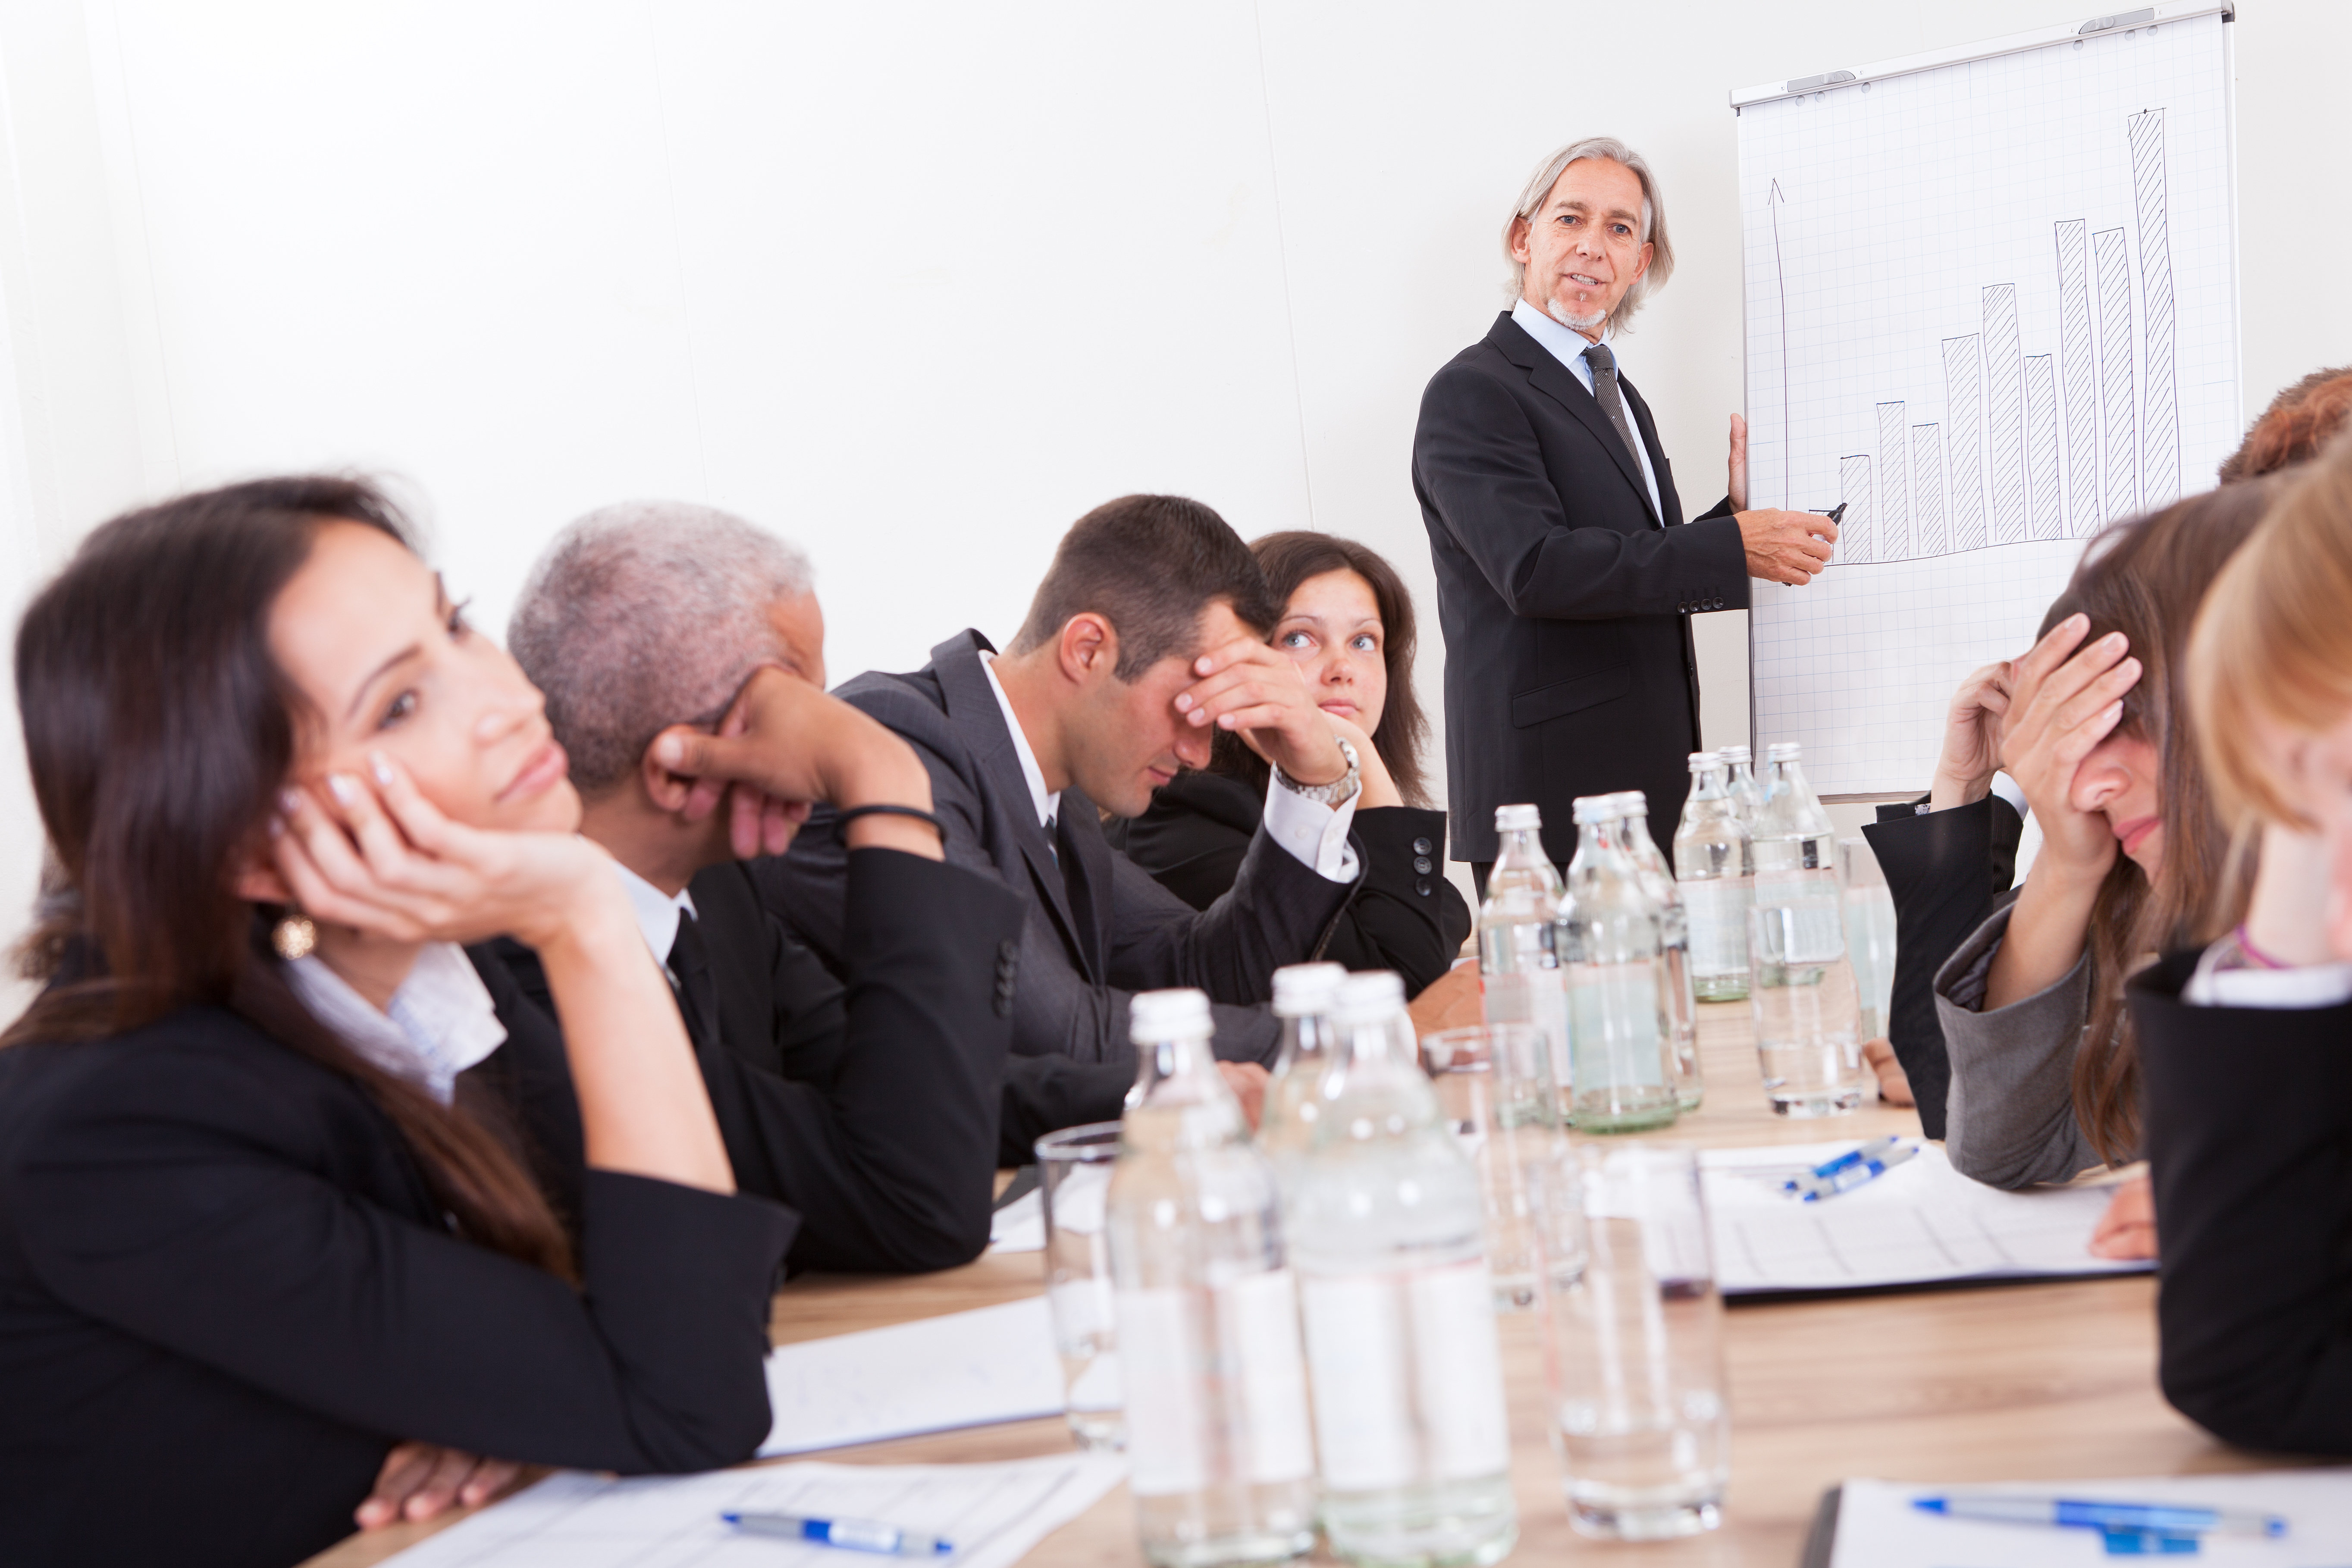 8 Tips to Run an Effective Meeting